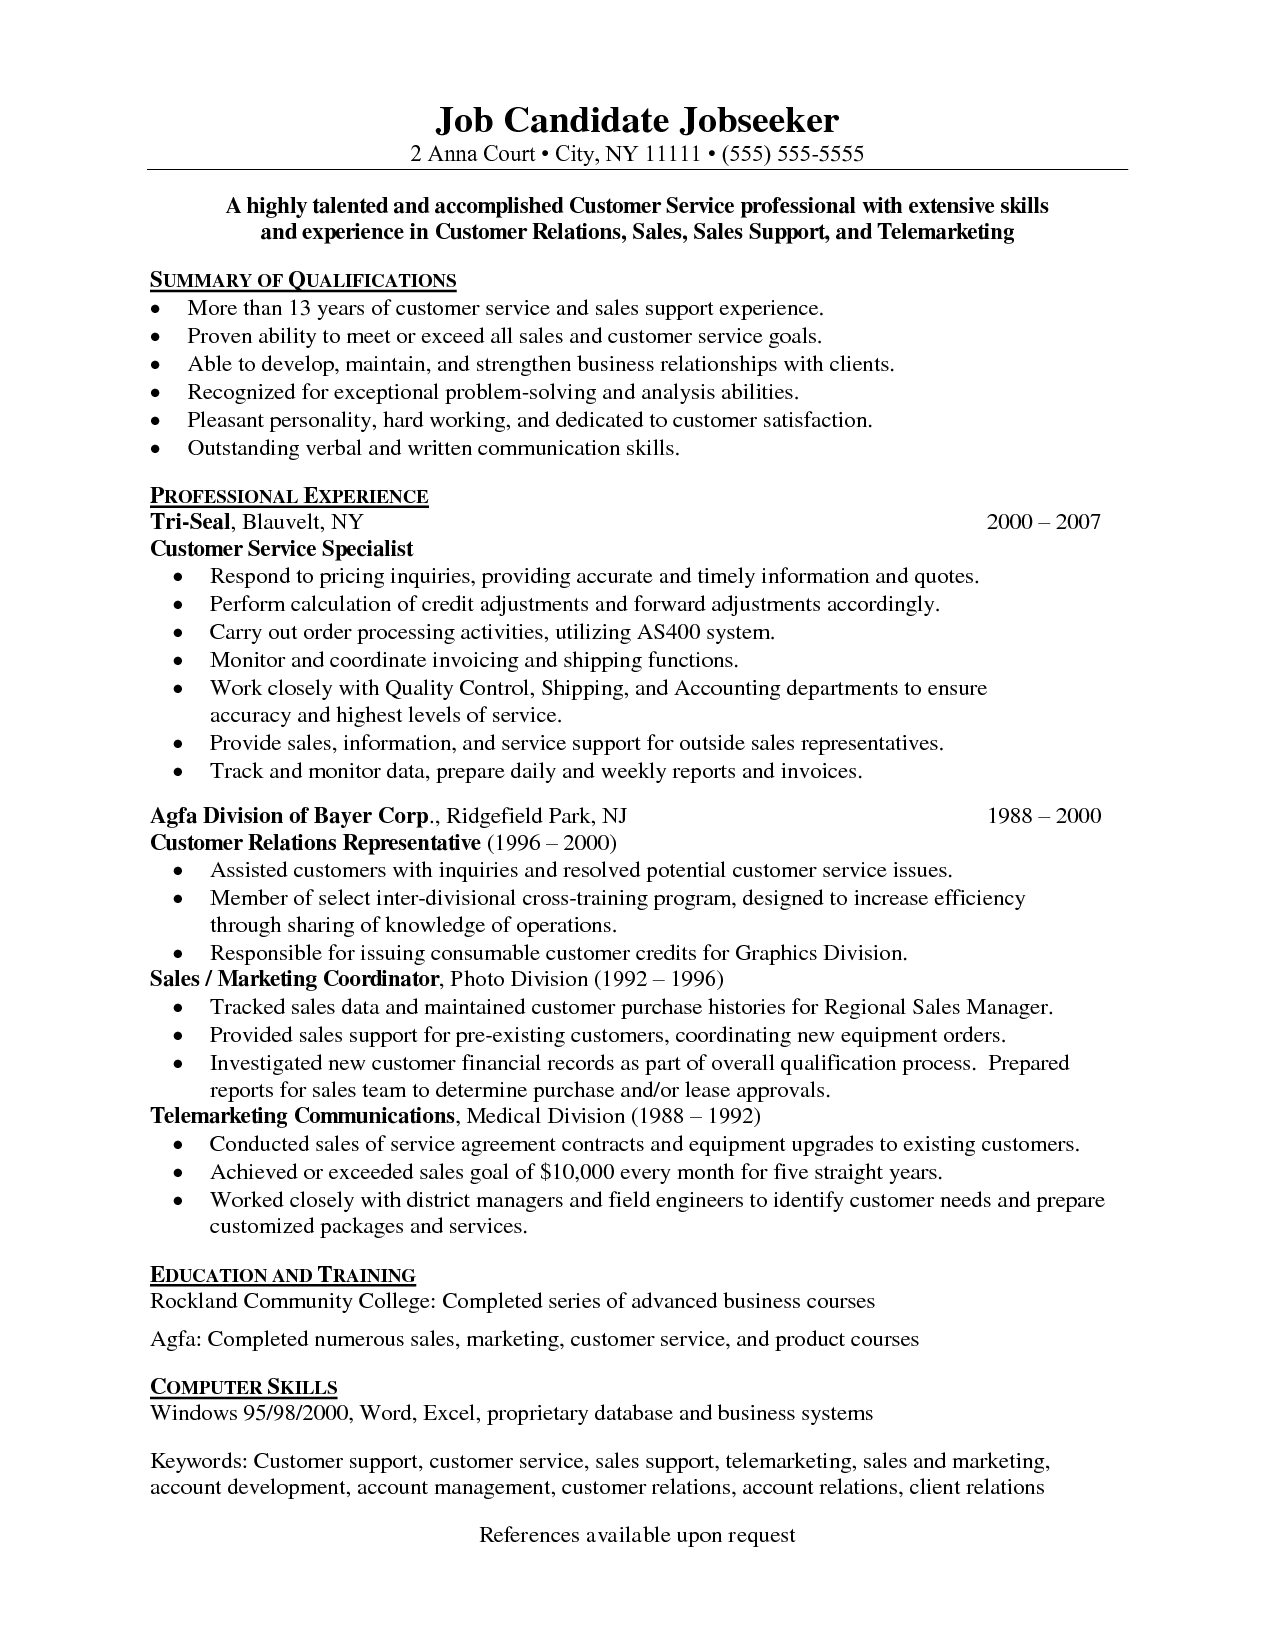 resume examples it support customer service technical support resume slideshare customer service technical support resume slideshare · technical support resume example